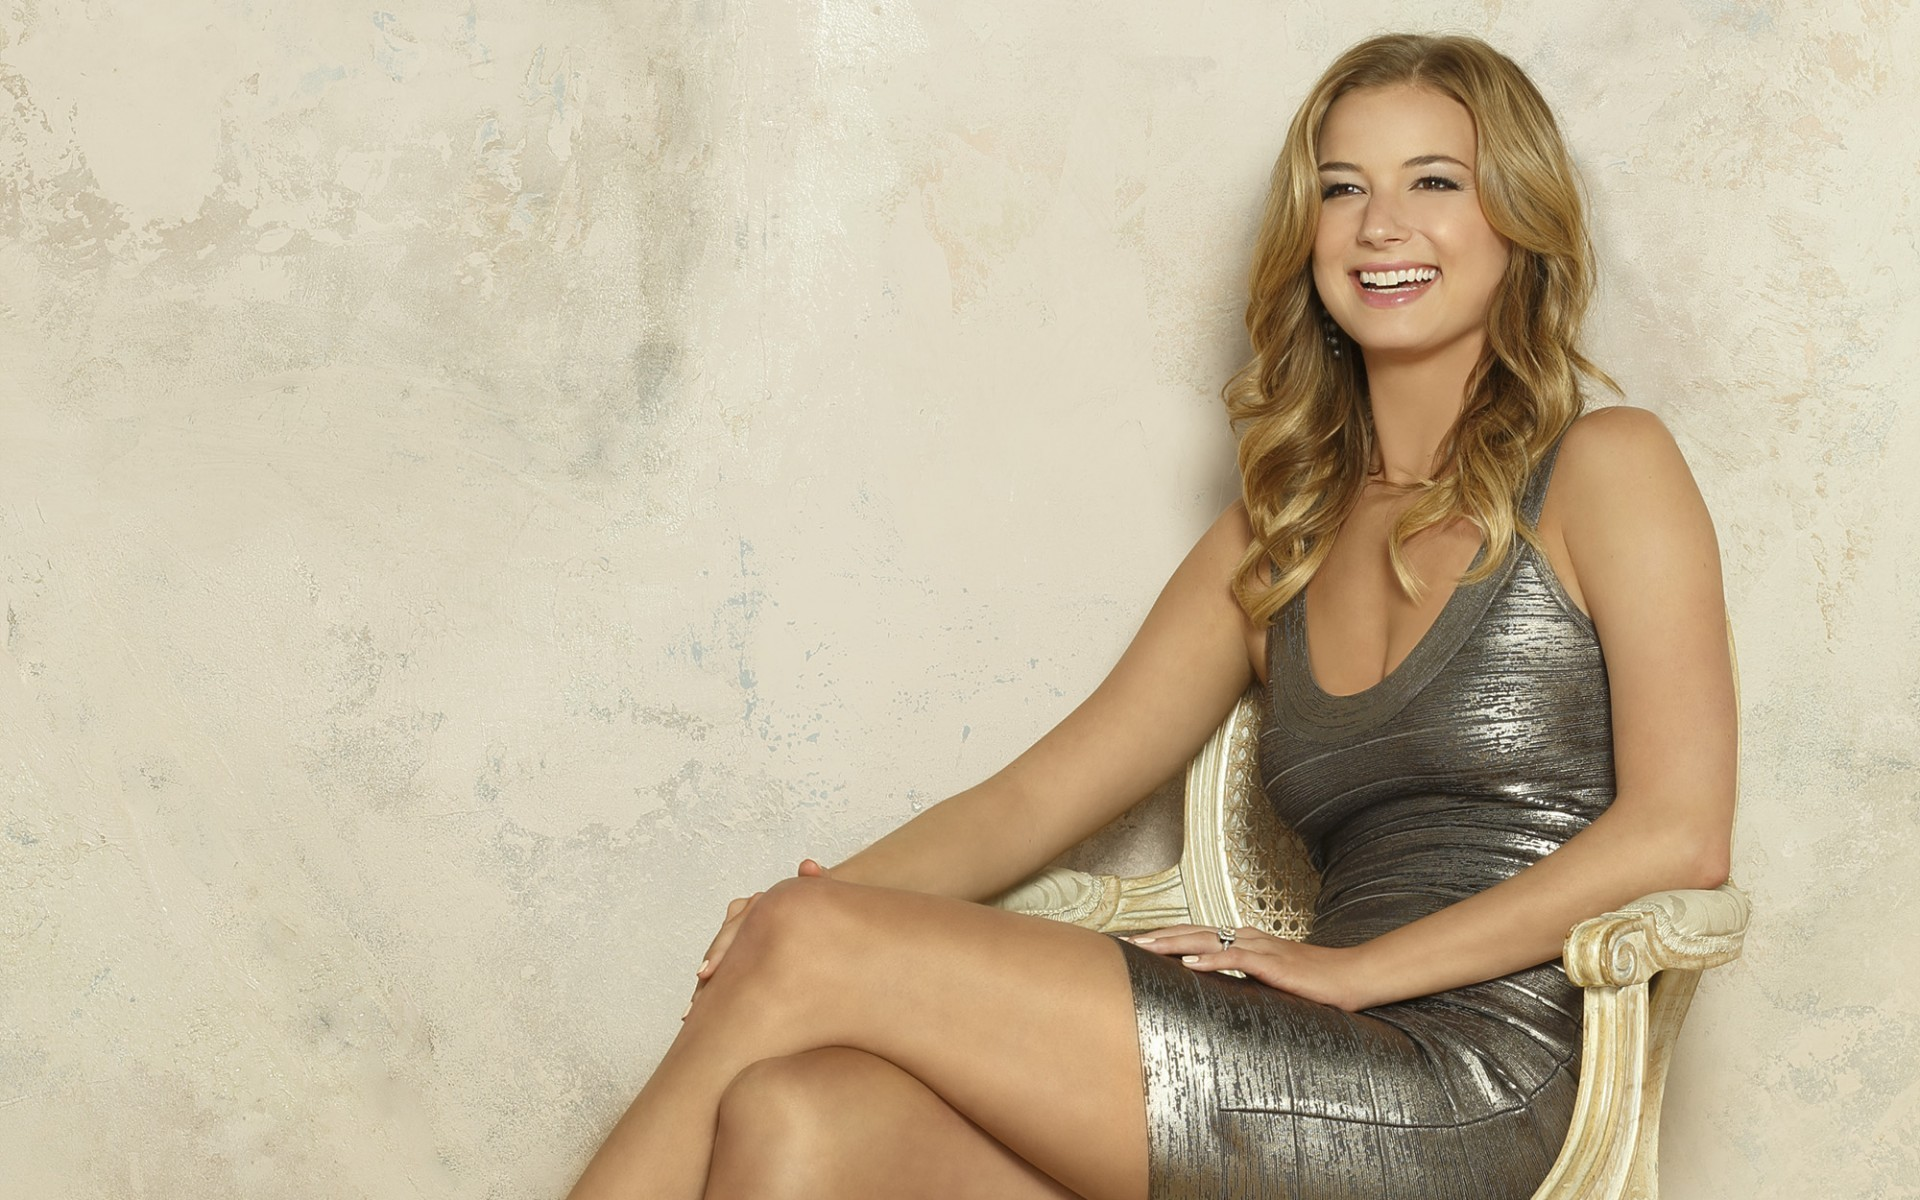 emily-vancamp-smile-wallpaper-50312-52002-hd-wallpapers